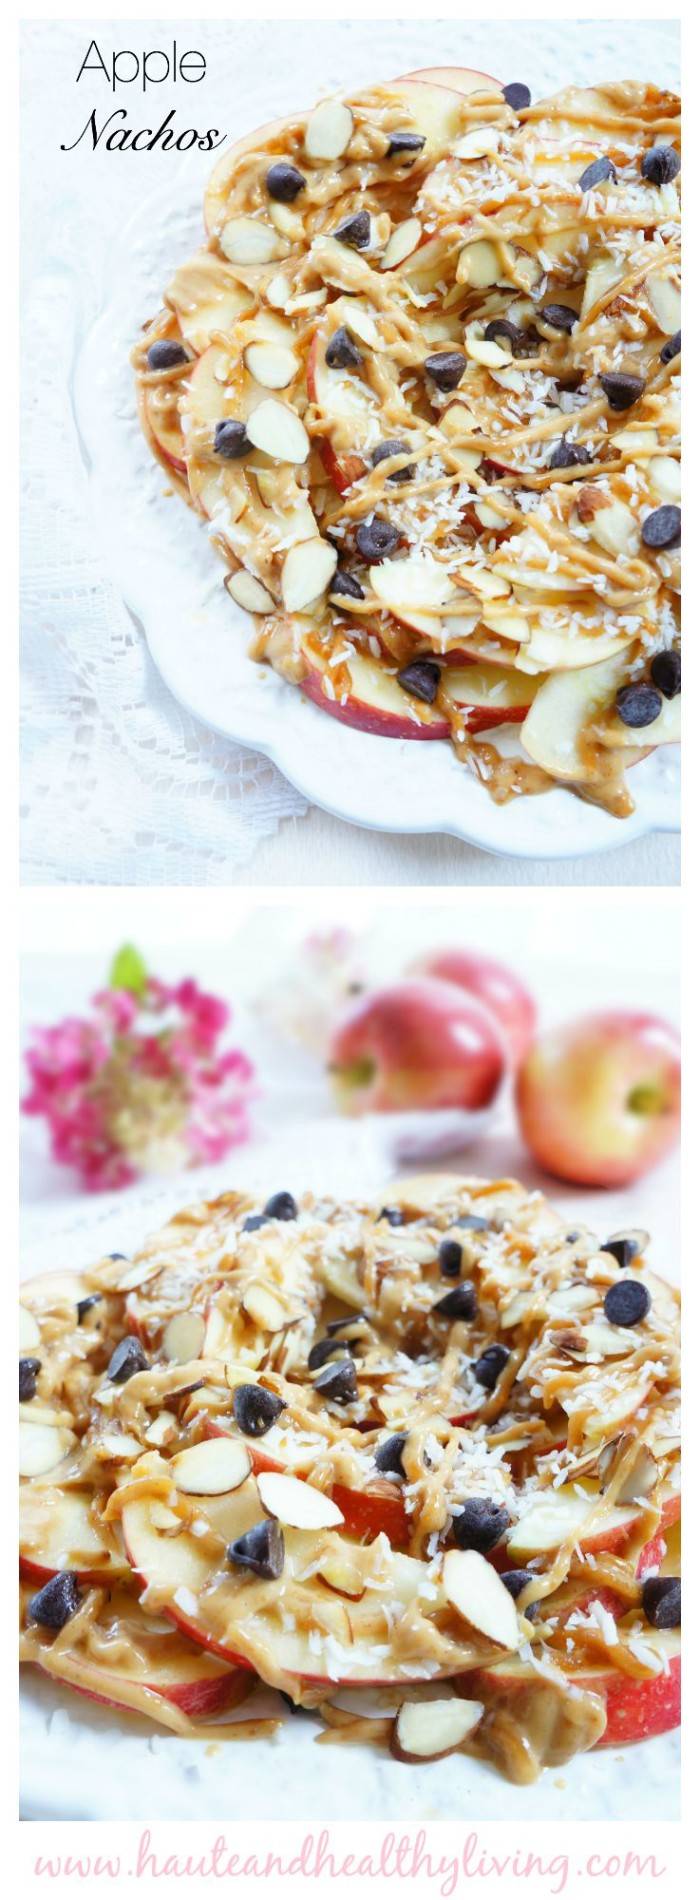 Apple nachos Collage